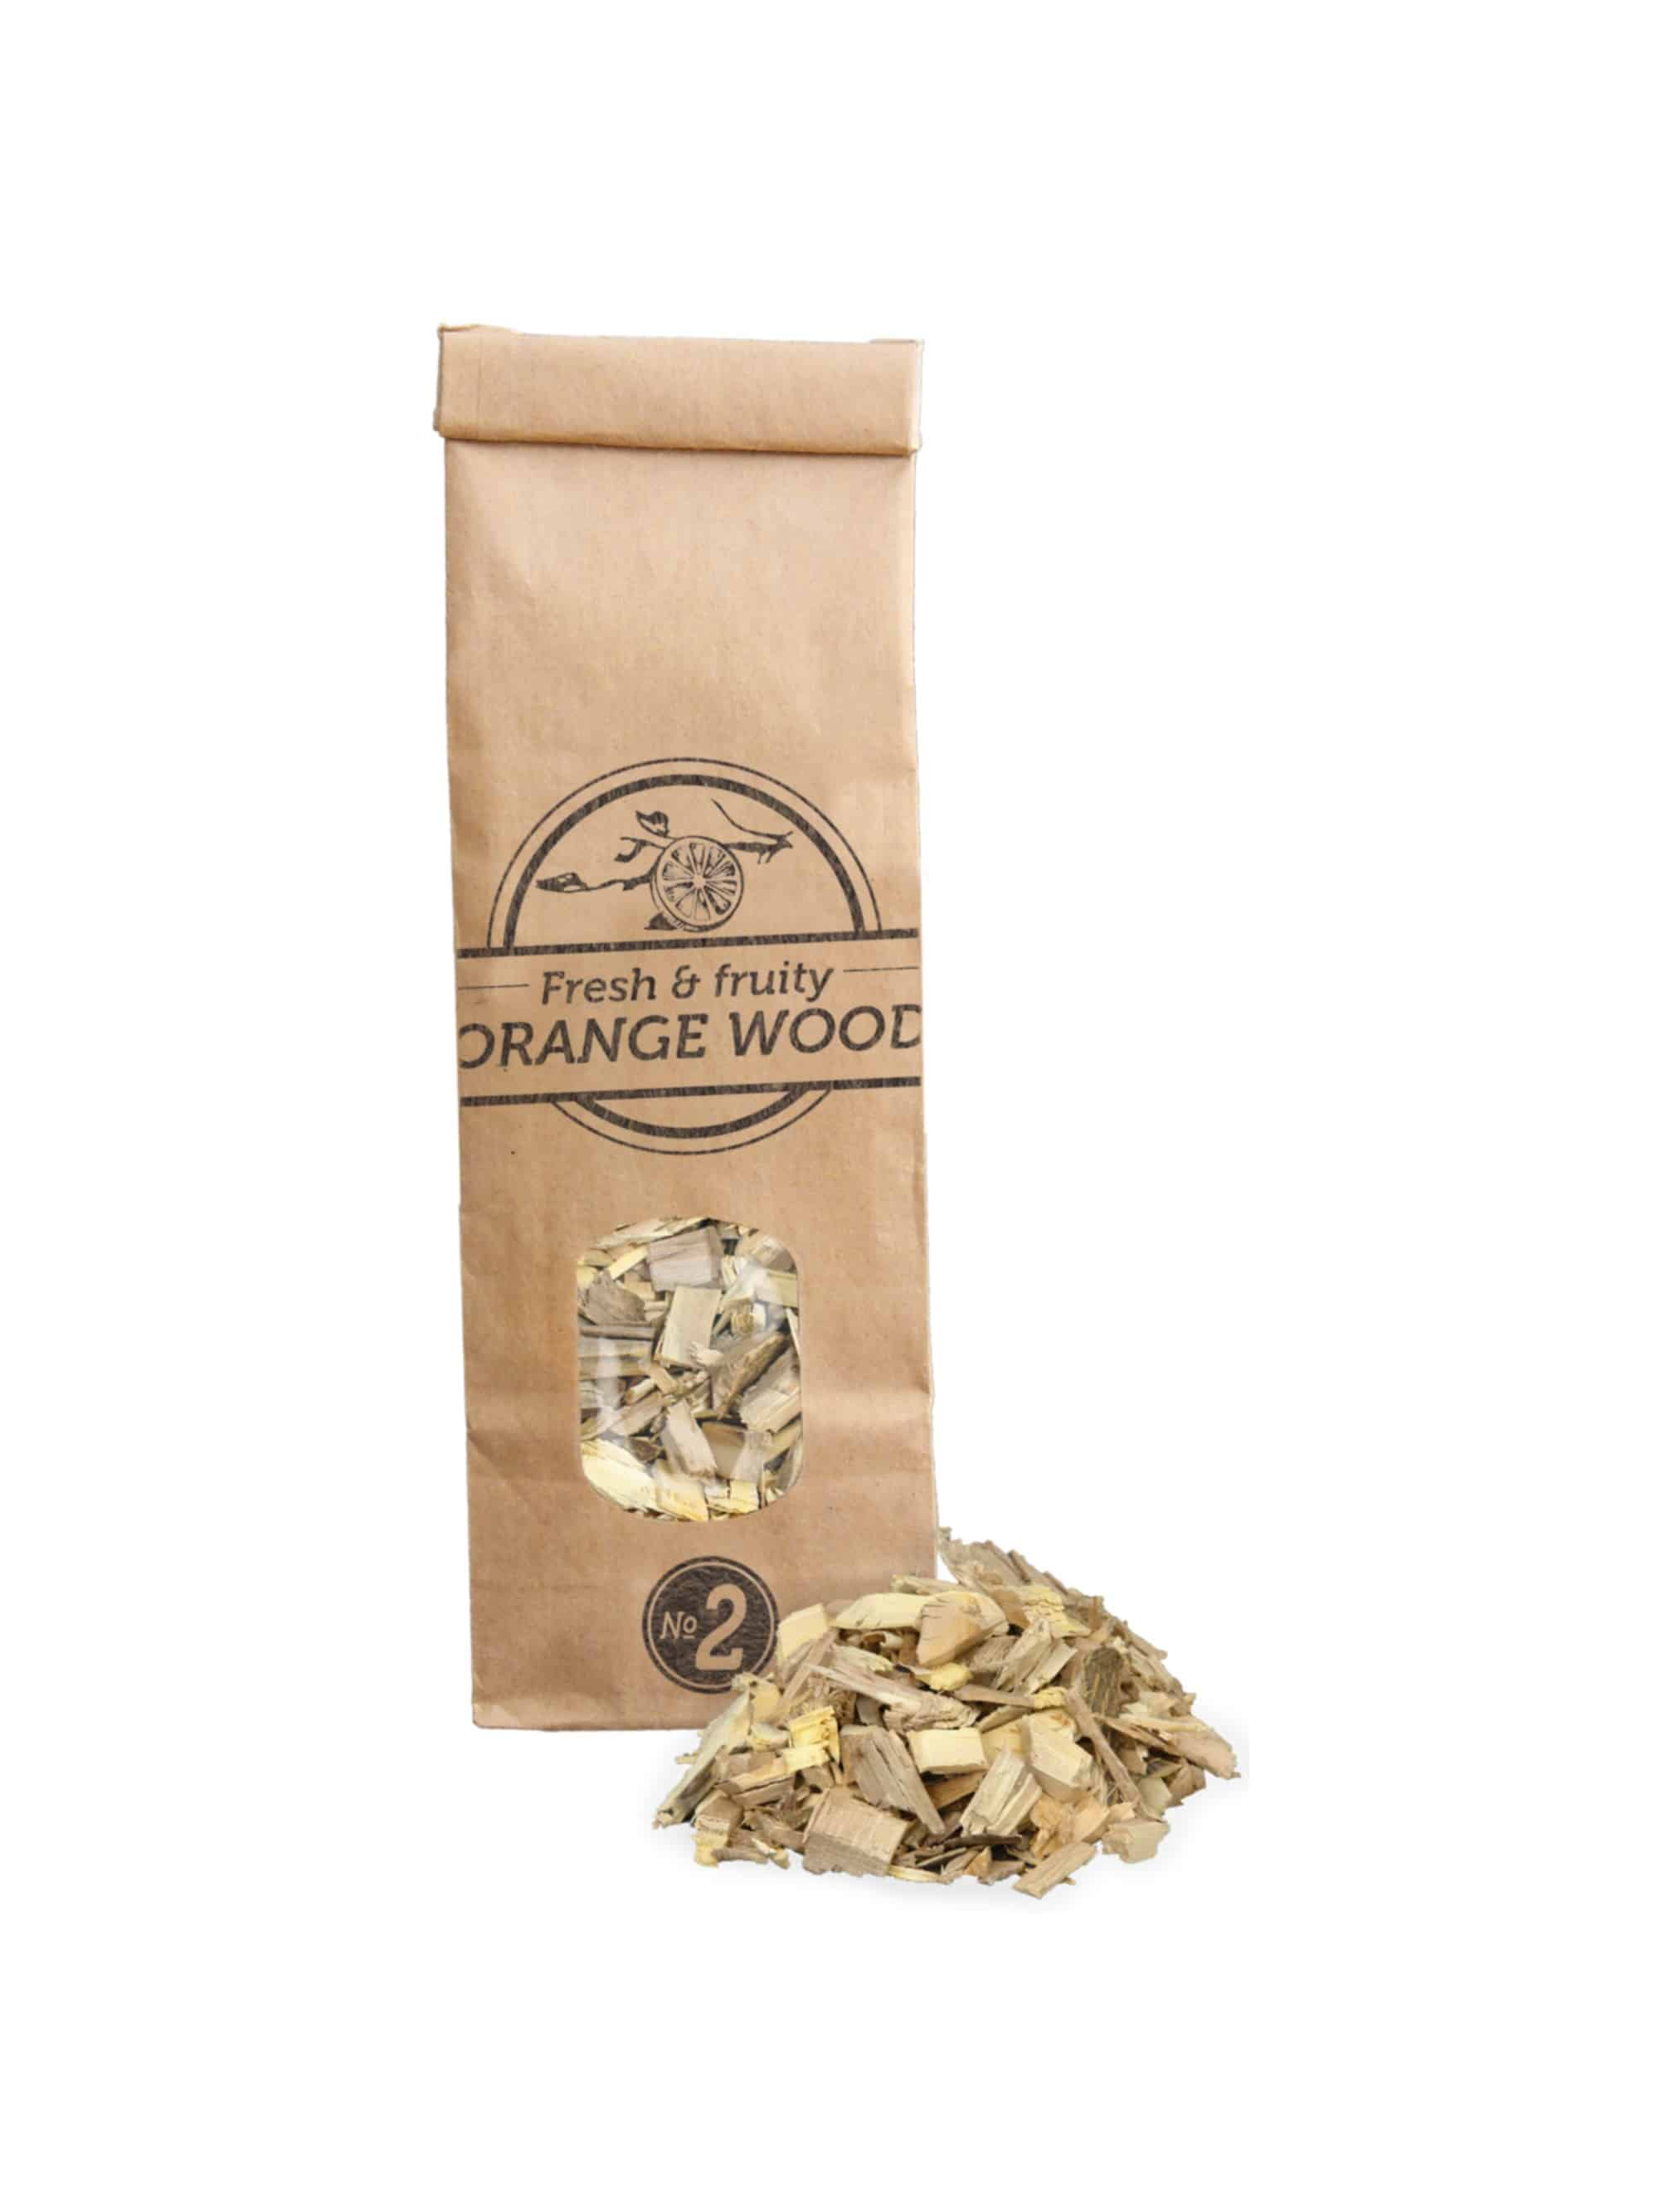 SOW Orange Wood Chips Nº2